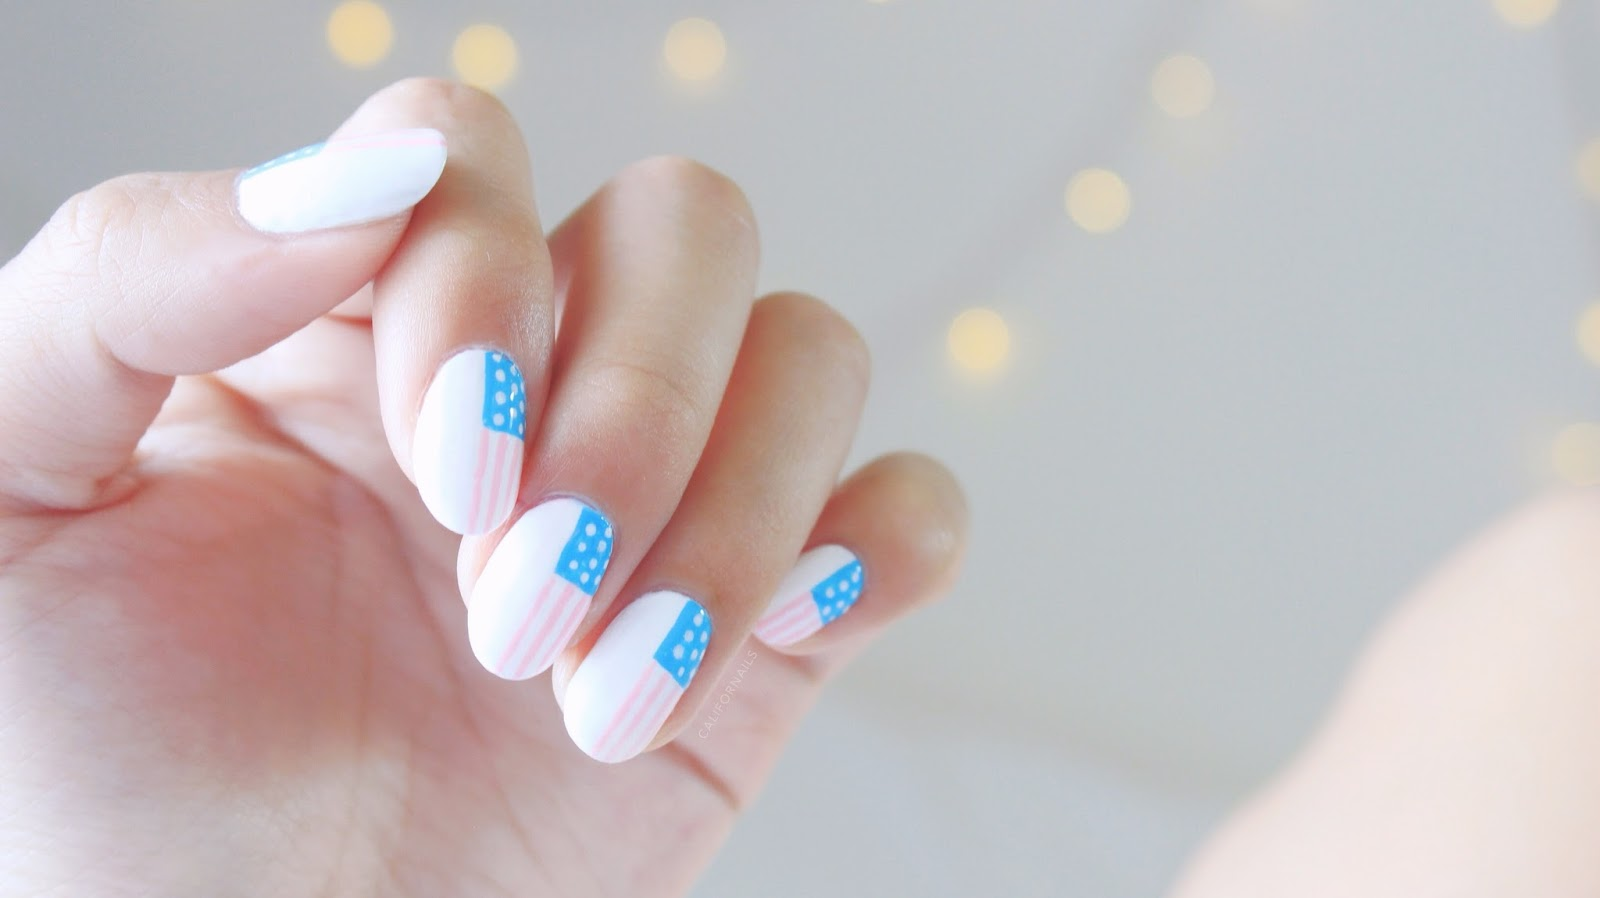 Girly Patriotic Nails | Do you wear red white and blue on Memorial day? | Patriotic Memorial Day Nail Designs